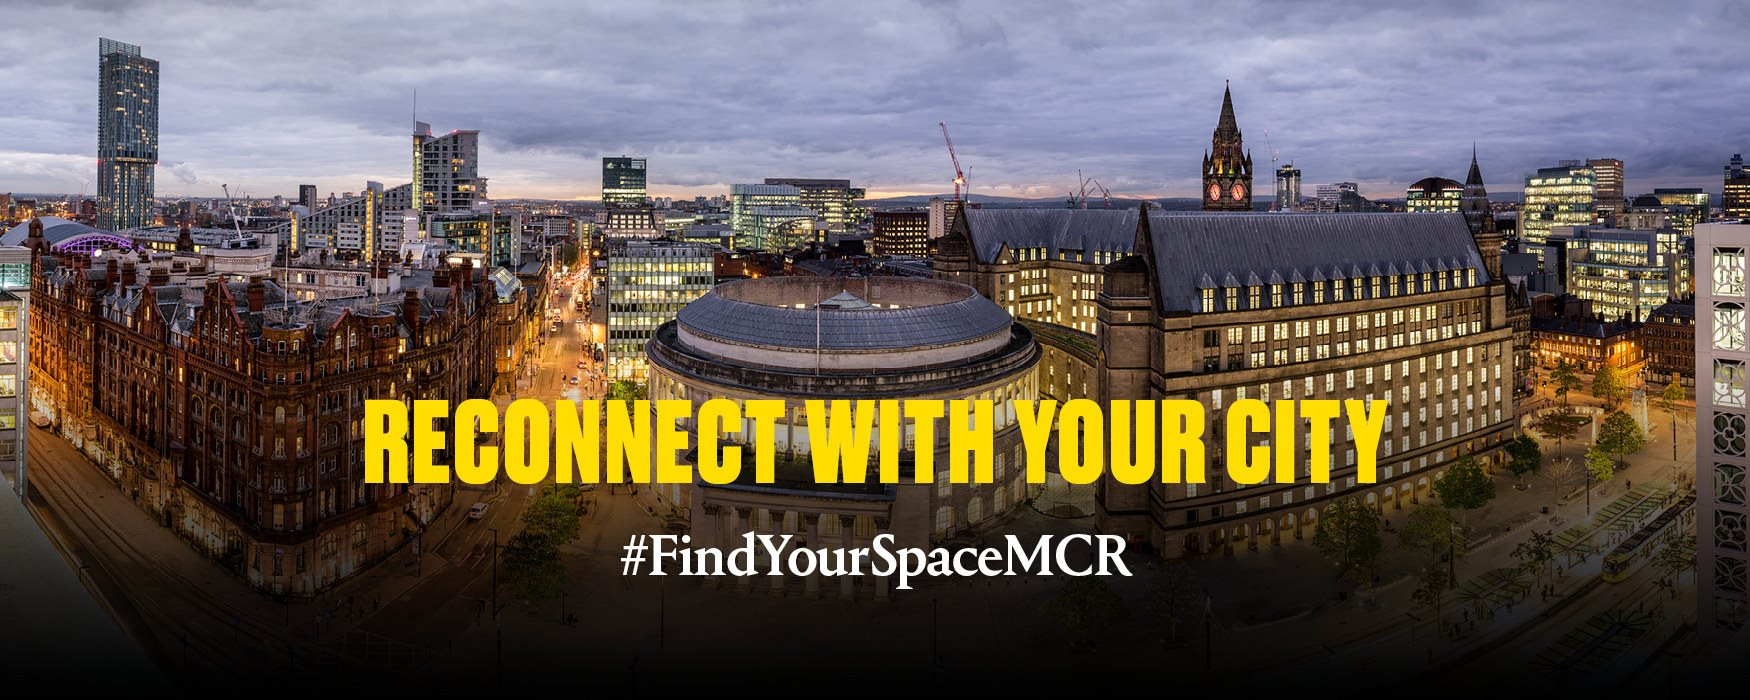 Find Your Space in Greater Manchester Header Cityscape